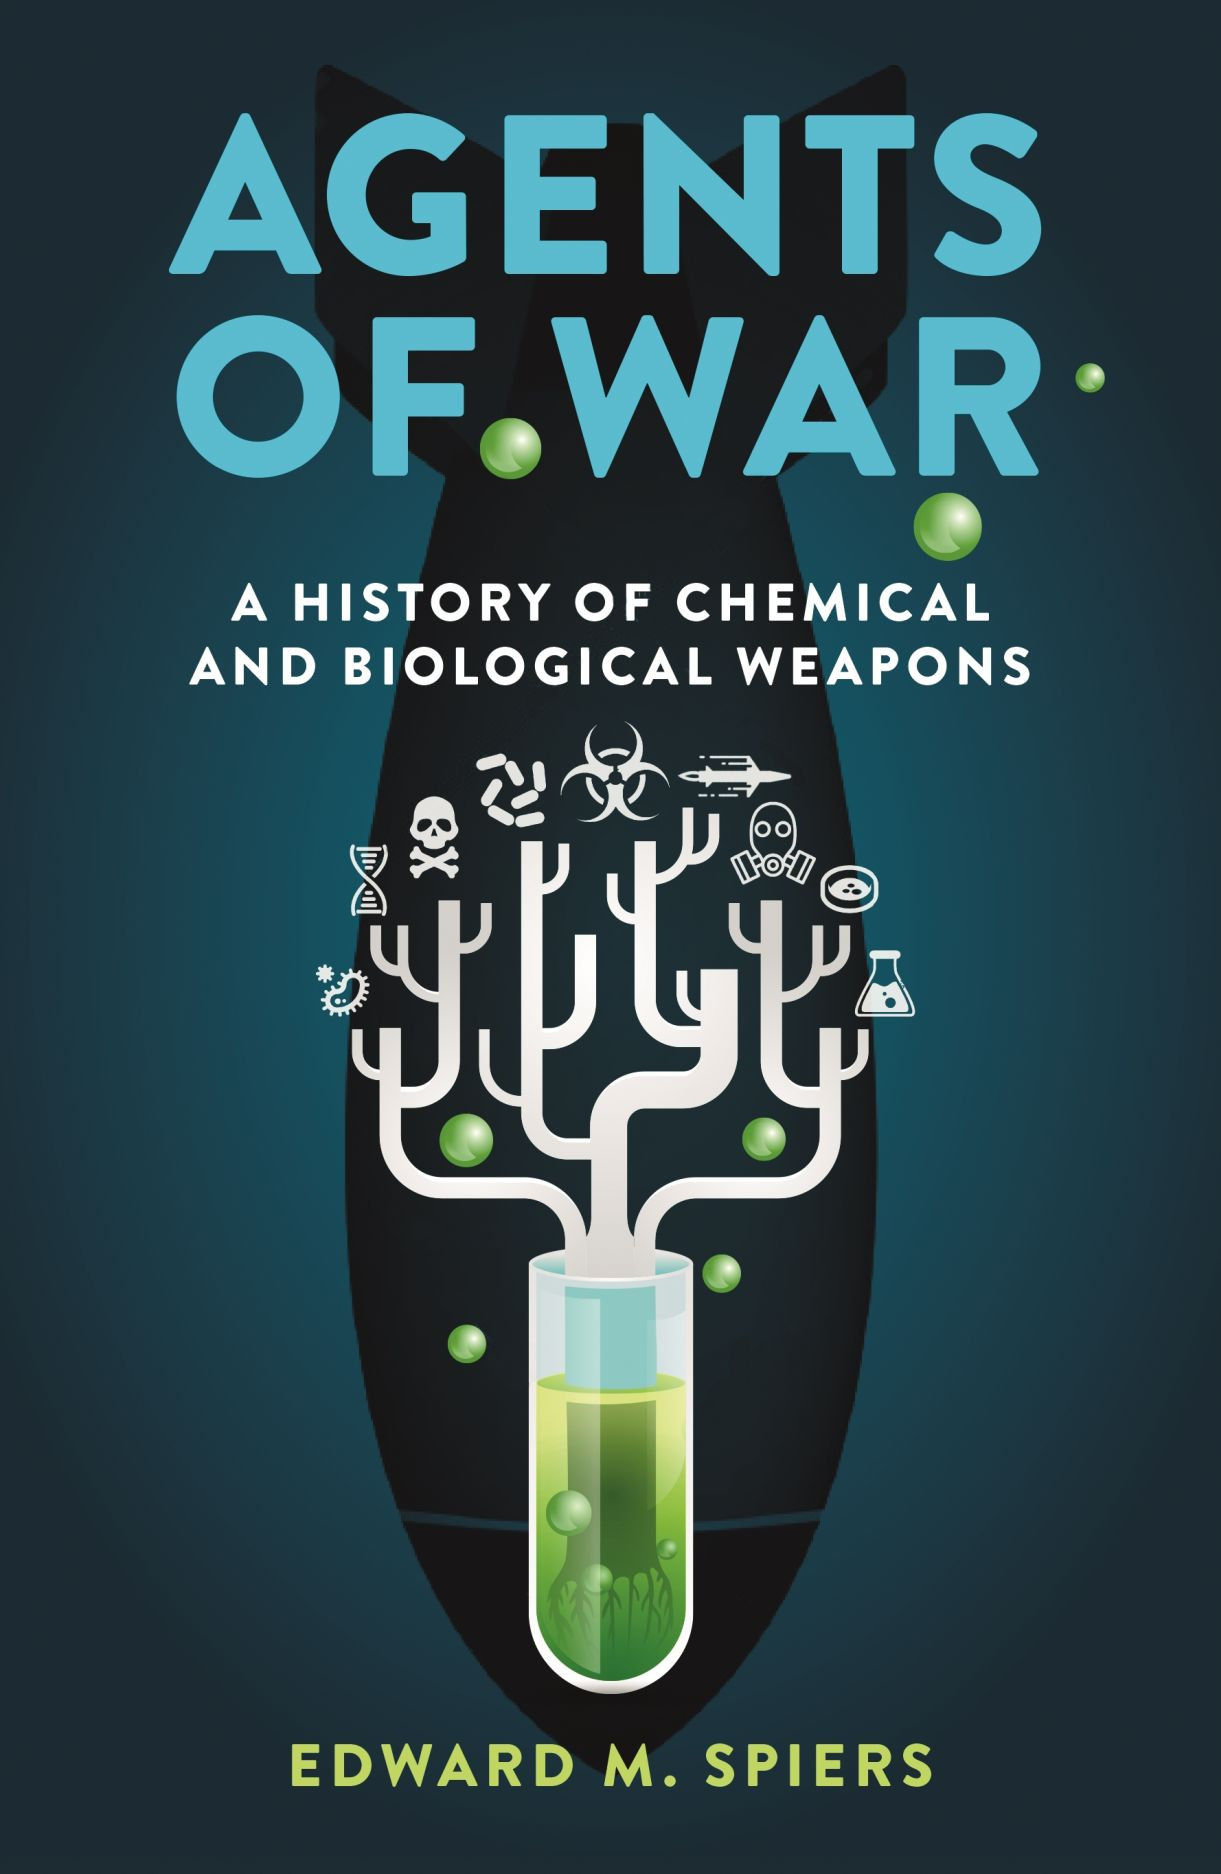 Agents of War: A History of Chemical and Biological Weapons, Second Expanded Edition